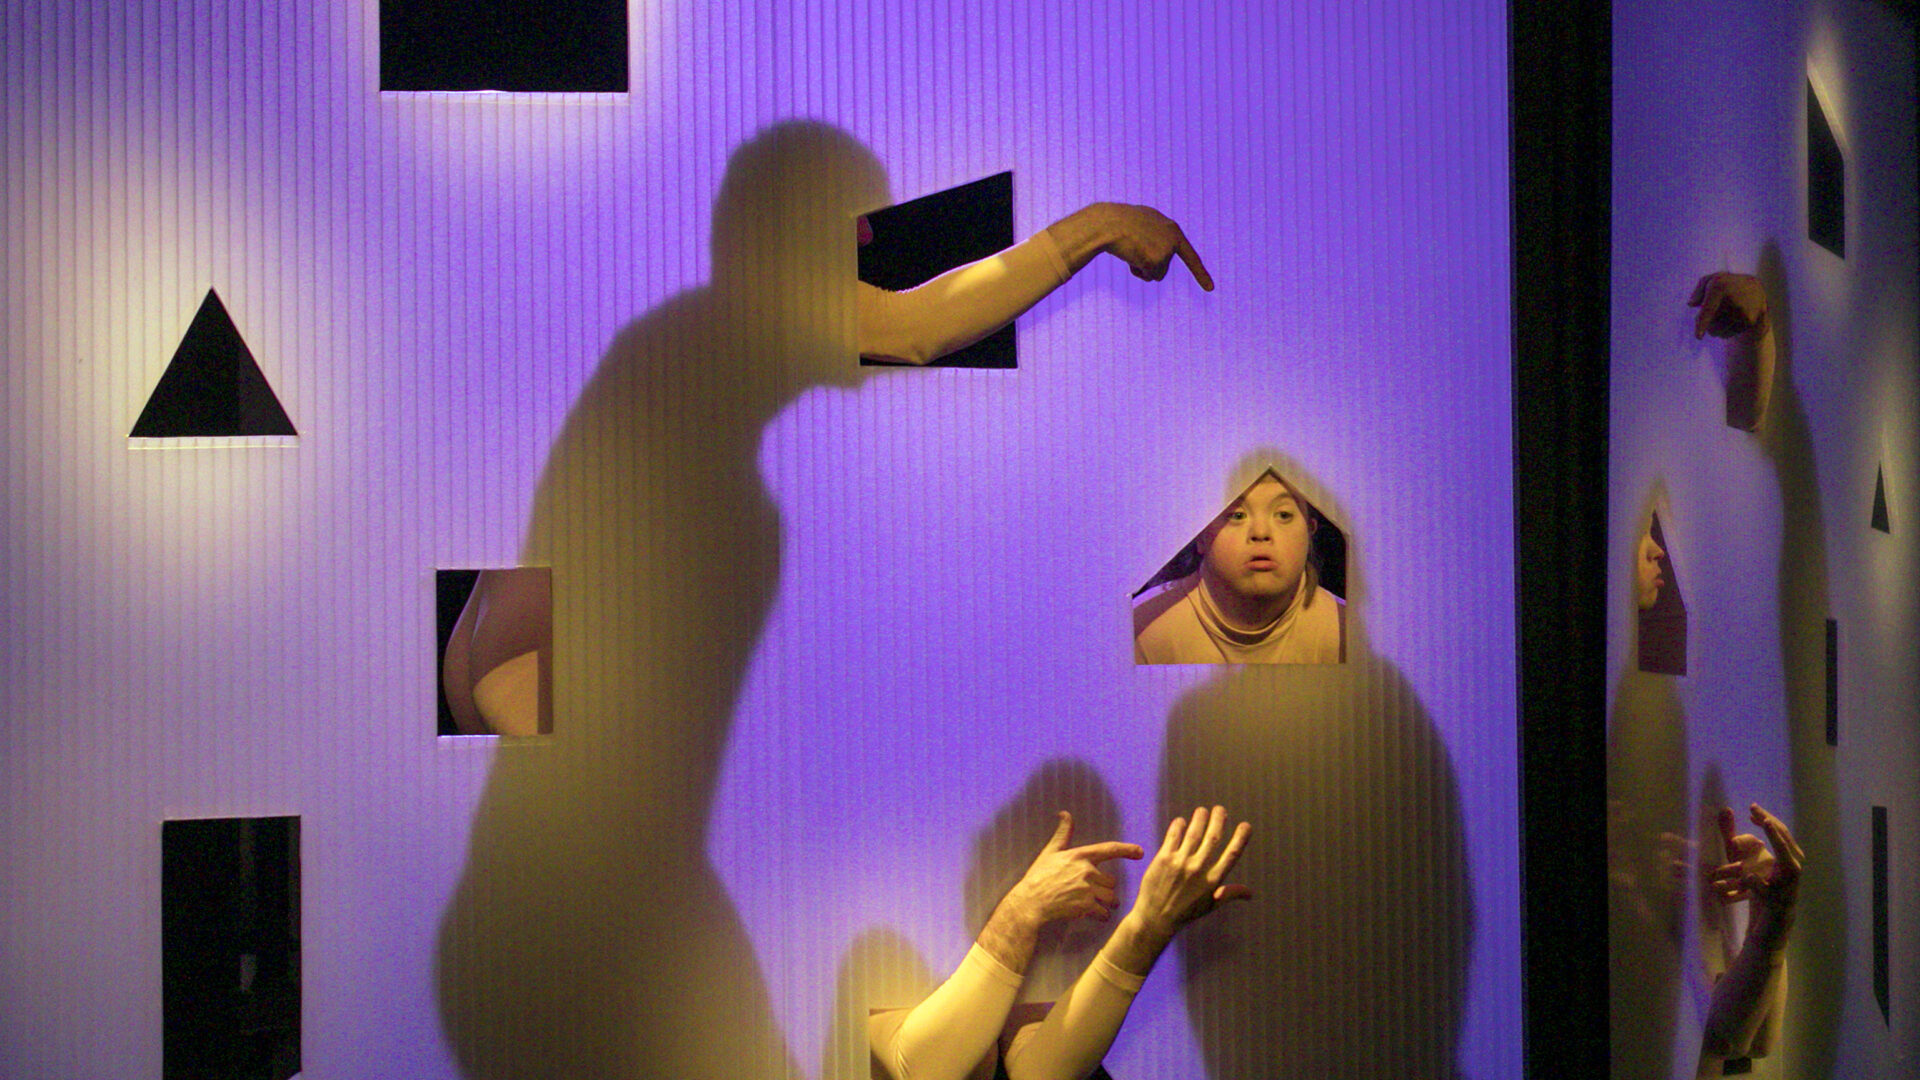 scene photo of a performance: shadows of three people behind a transparent wall on a theatre stage. Some body parts are visible.